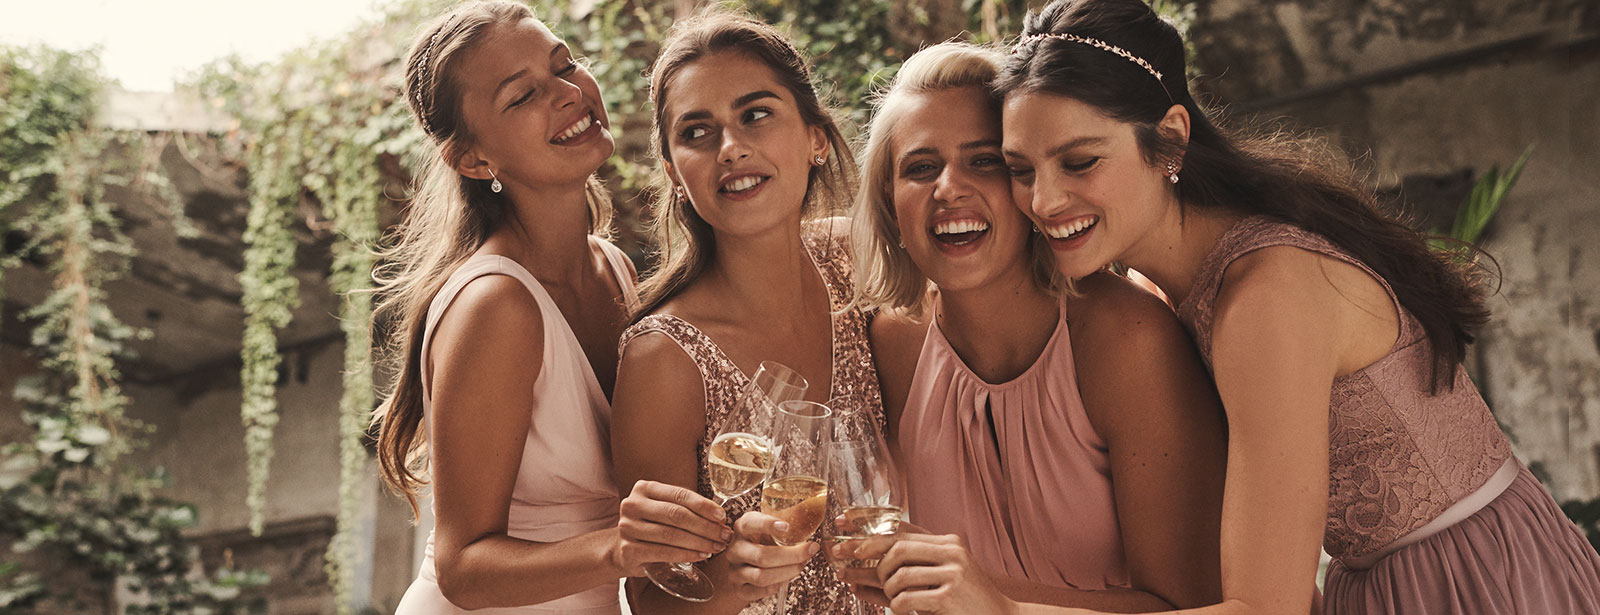 Bridesmaids in pink toasting champagne on a terrace